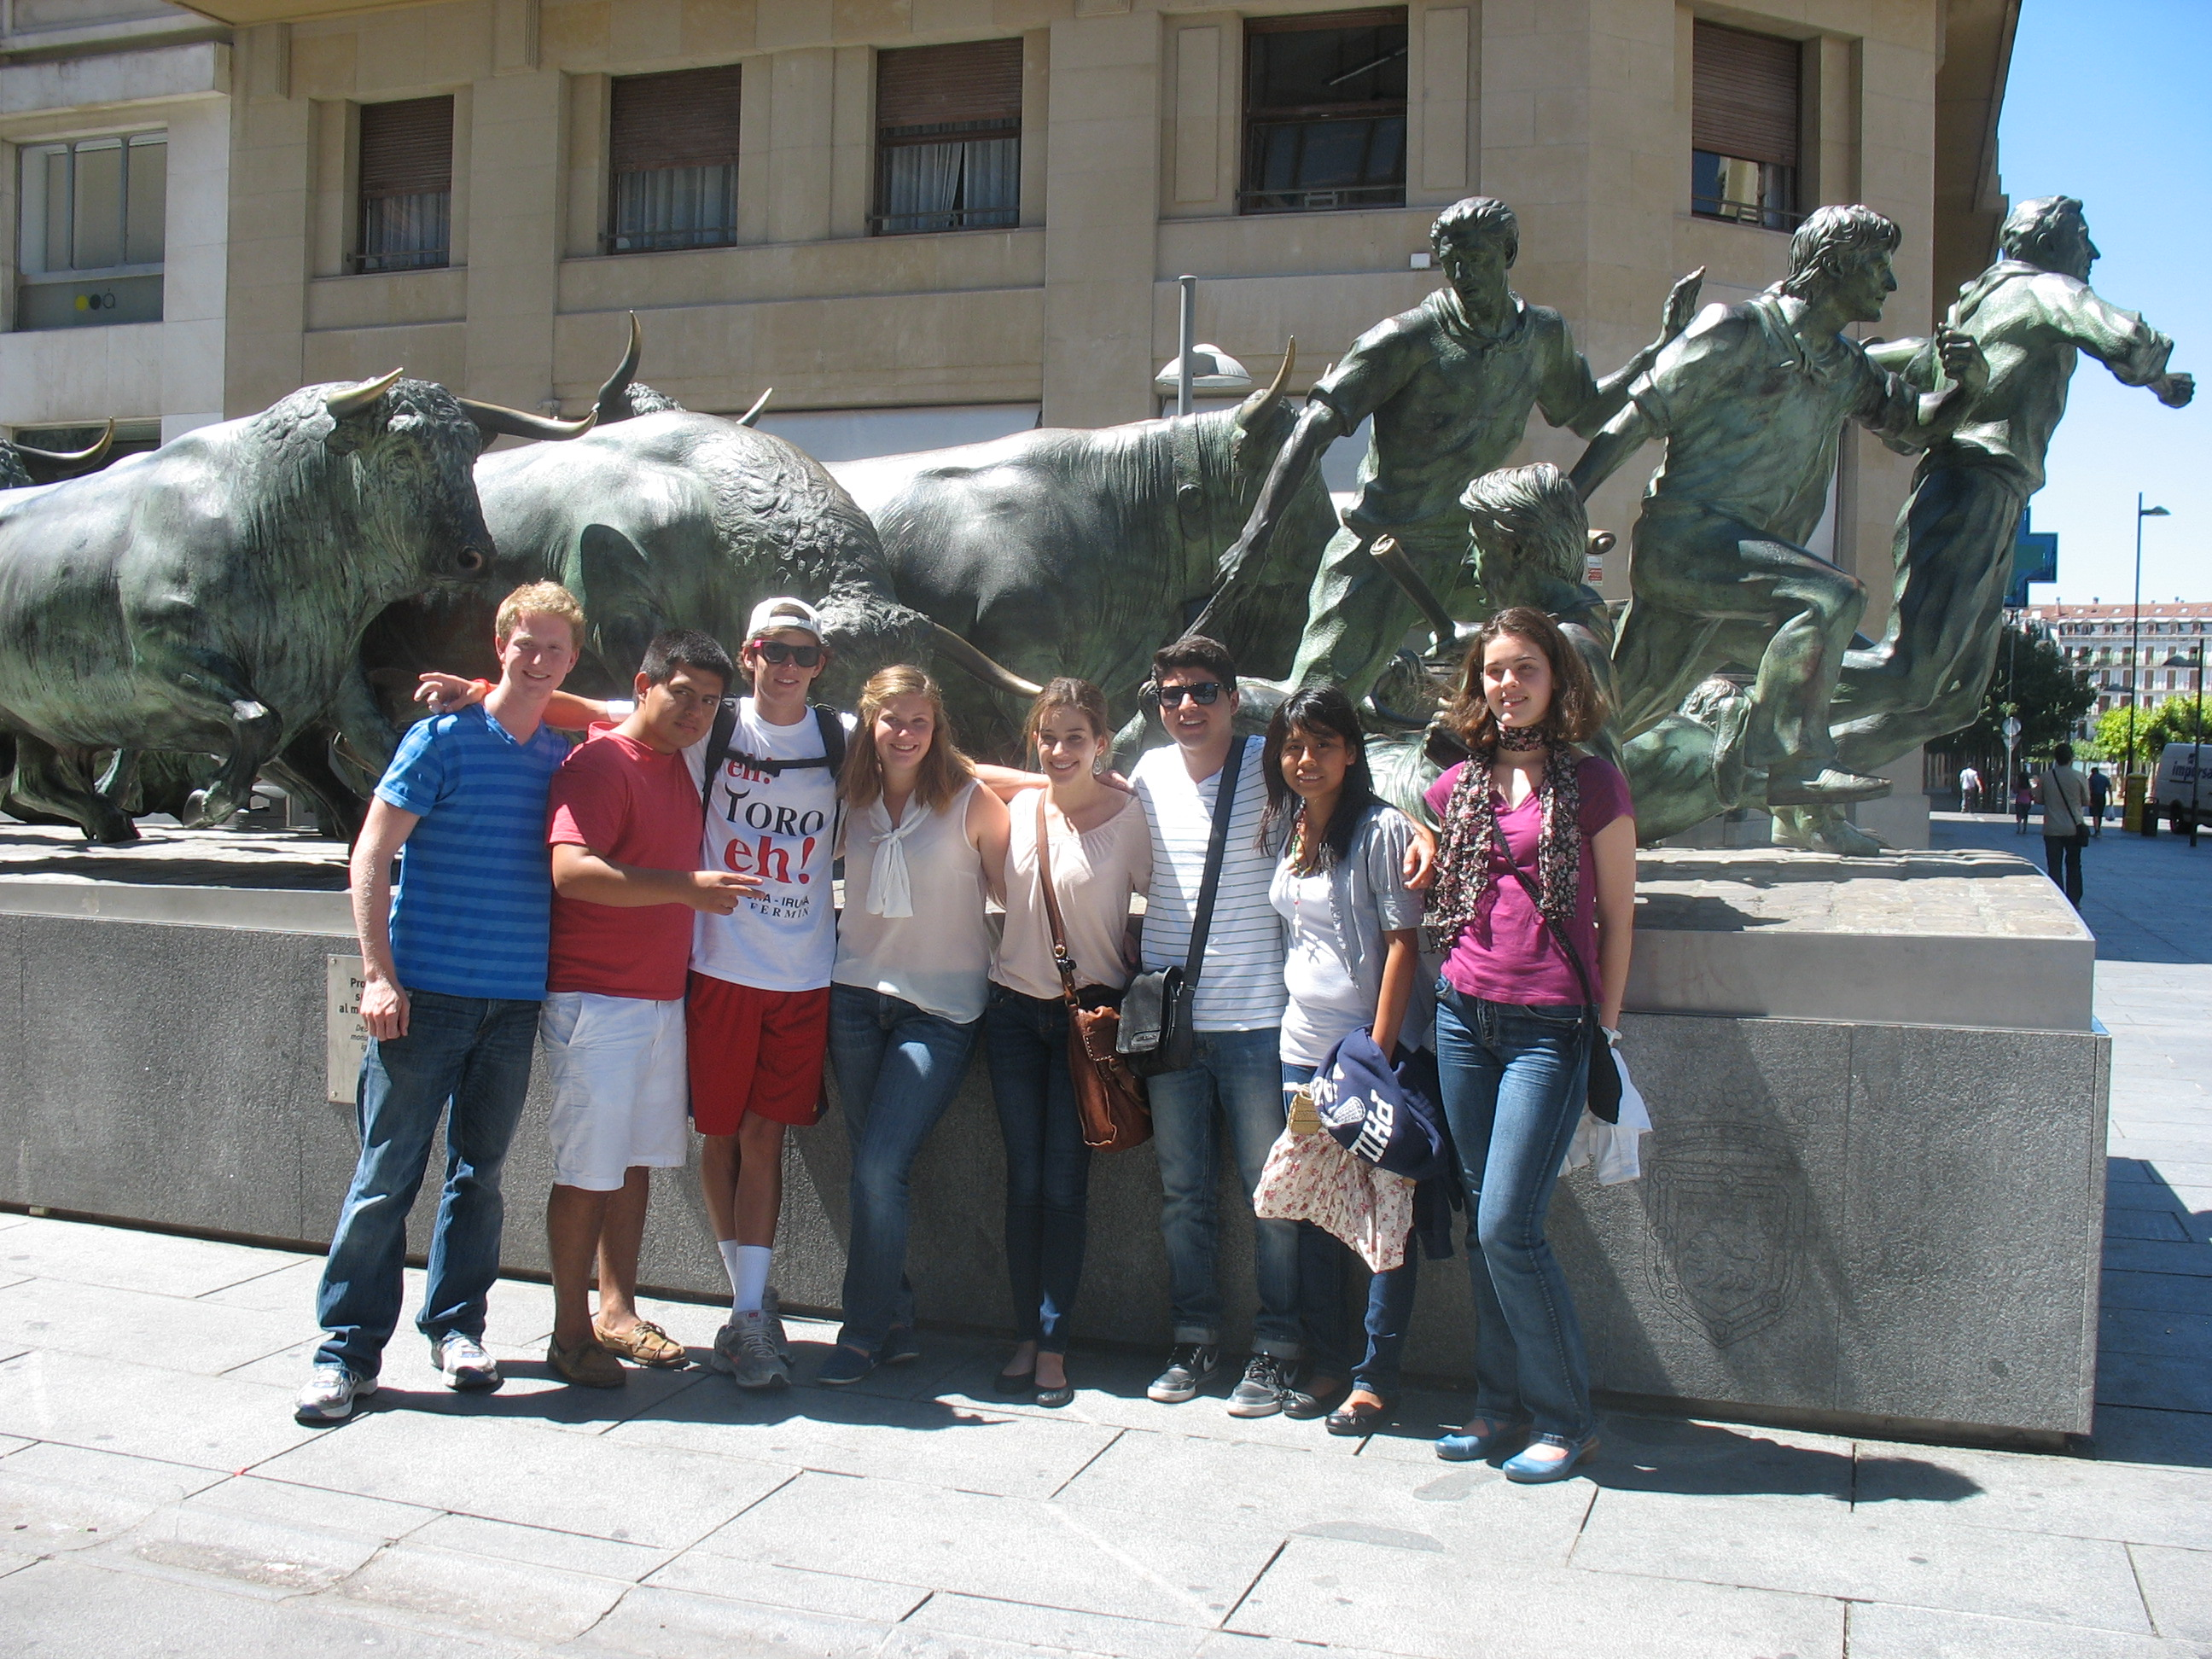 Summer Program - Adventure/Trips | Experiment in International Living: Spain - Cultural Discovery